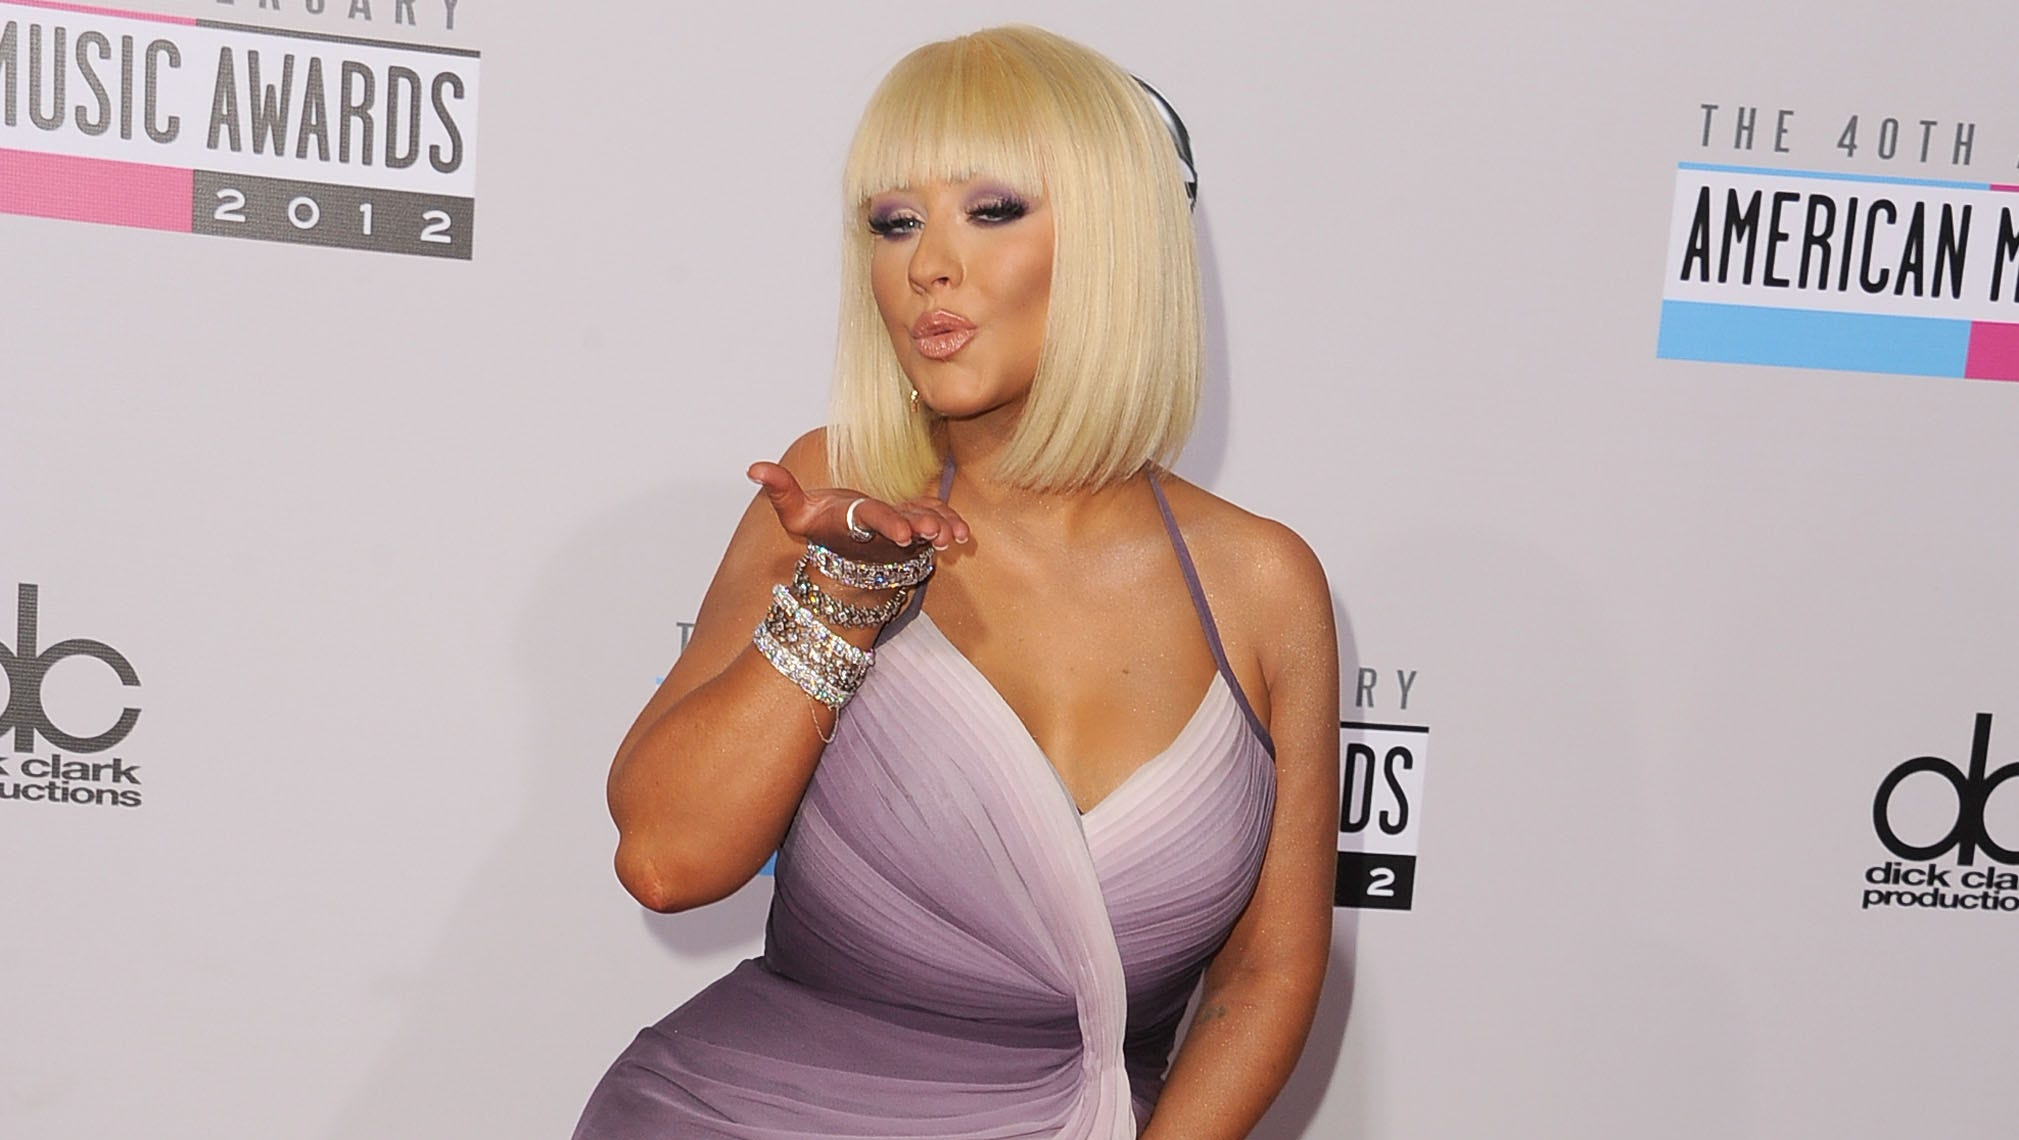 Christina Aguilera then: Aguilera, 32, popped her old skinny self out of the genie bottle, debuting a whittled-down shape in a slinky, pinky dress late last month ...